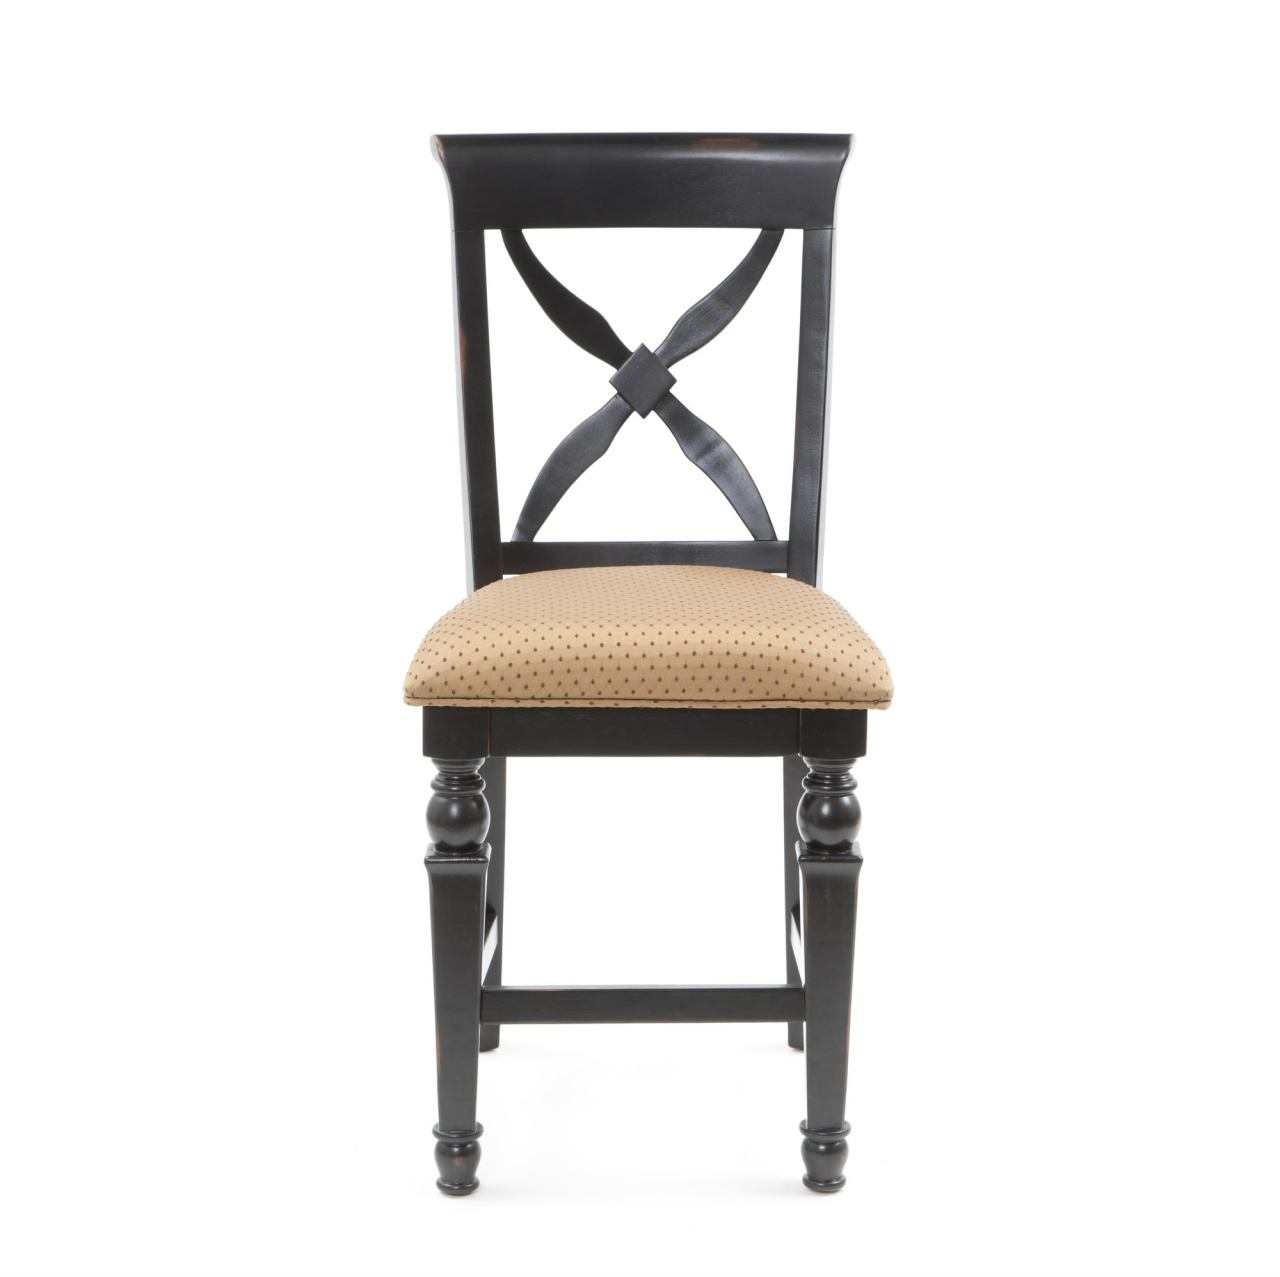 Hillsdale Northern Heights Non Swivel Counter Stool in Black/ Honey (Set of 2) 4439-822W